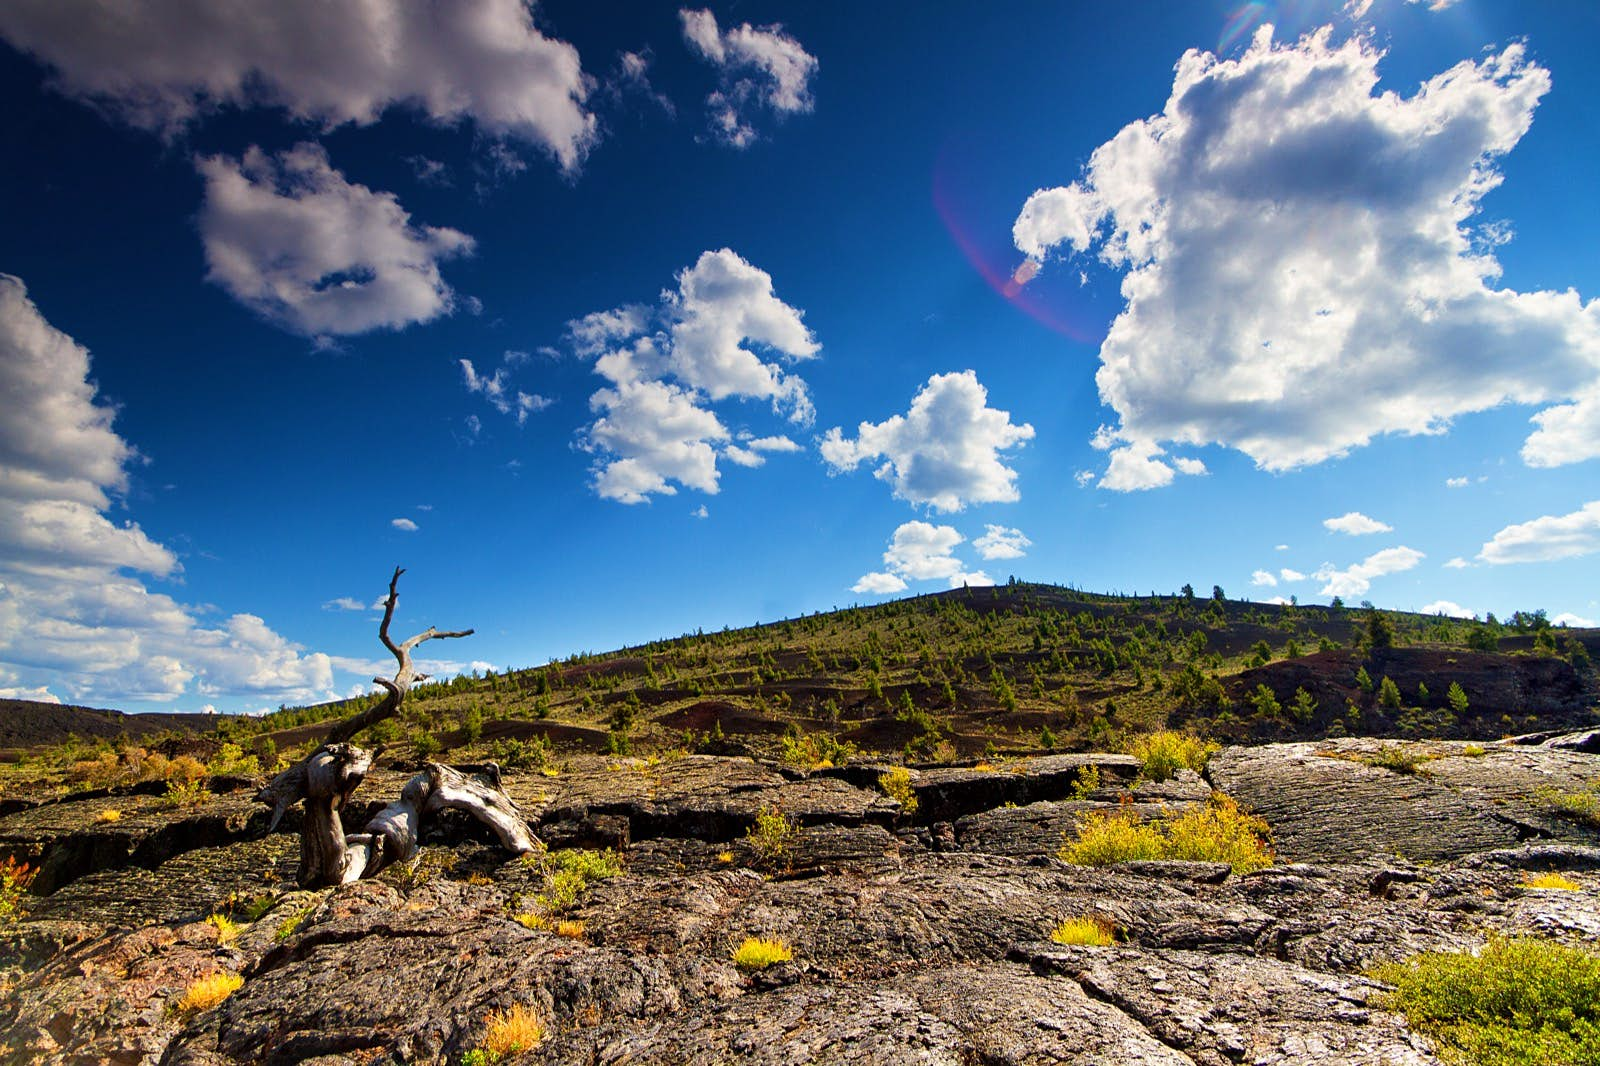 Lone dead tree in foreground and large stretches of lava rock with partially forested hill in background on partly cloudy summer afternoon at Craters of the Moon National Monument; Apollo anniversary experiences